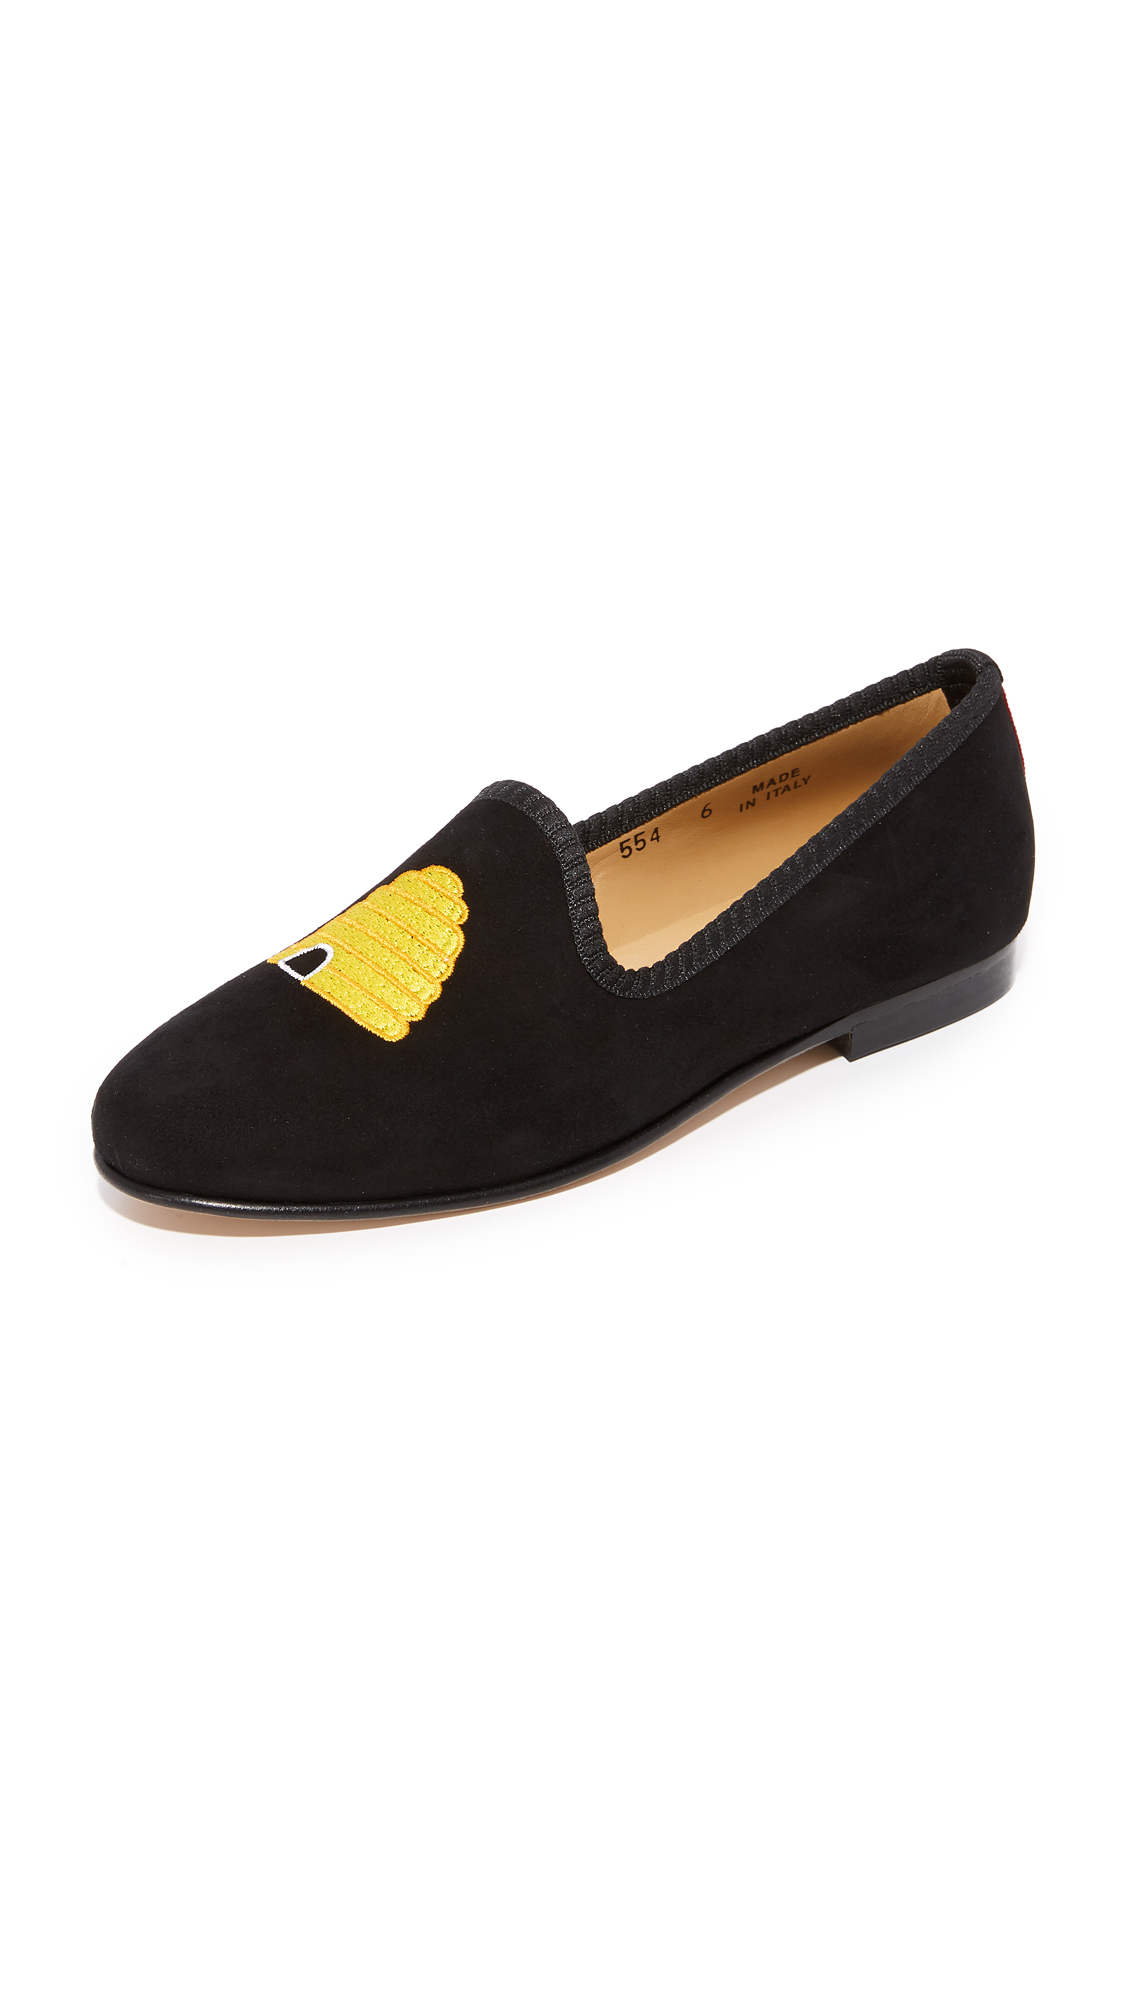 Del Toro Honey Pot Flats - Black